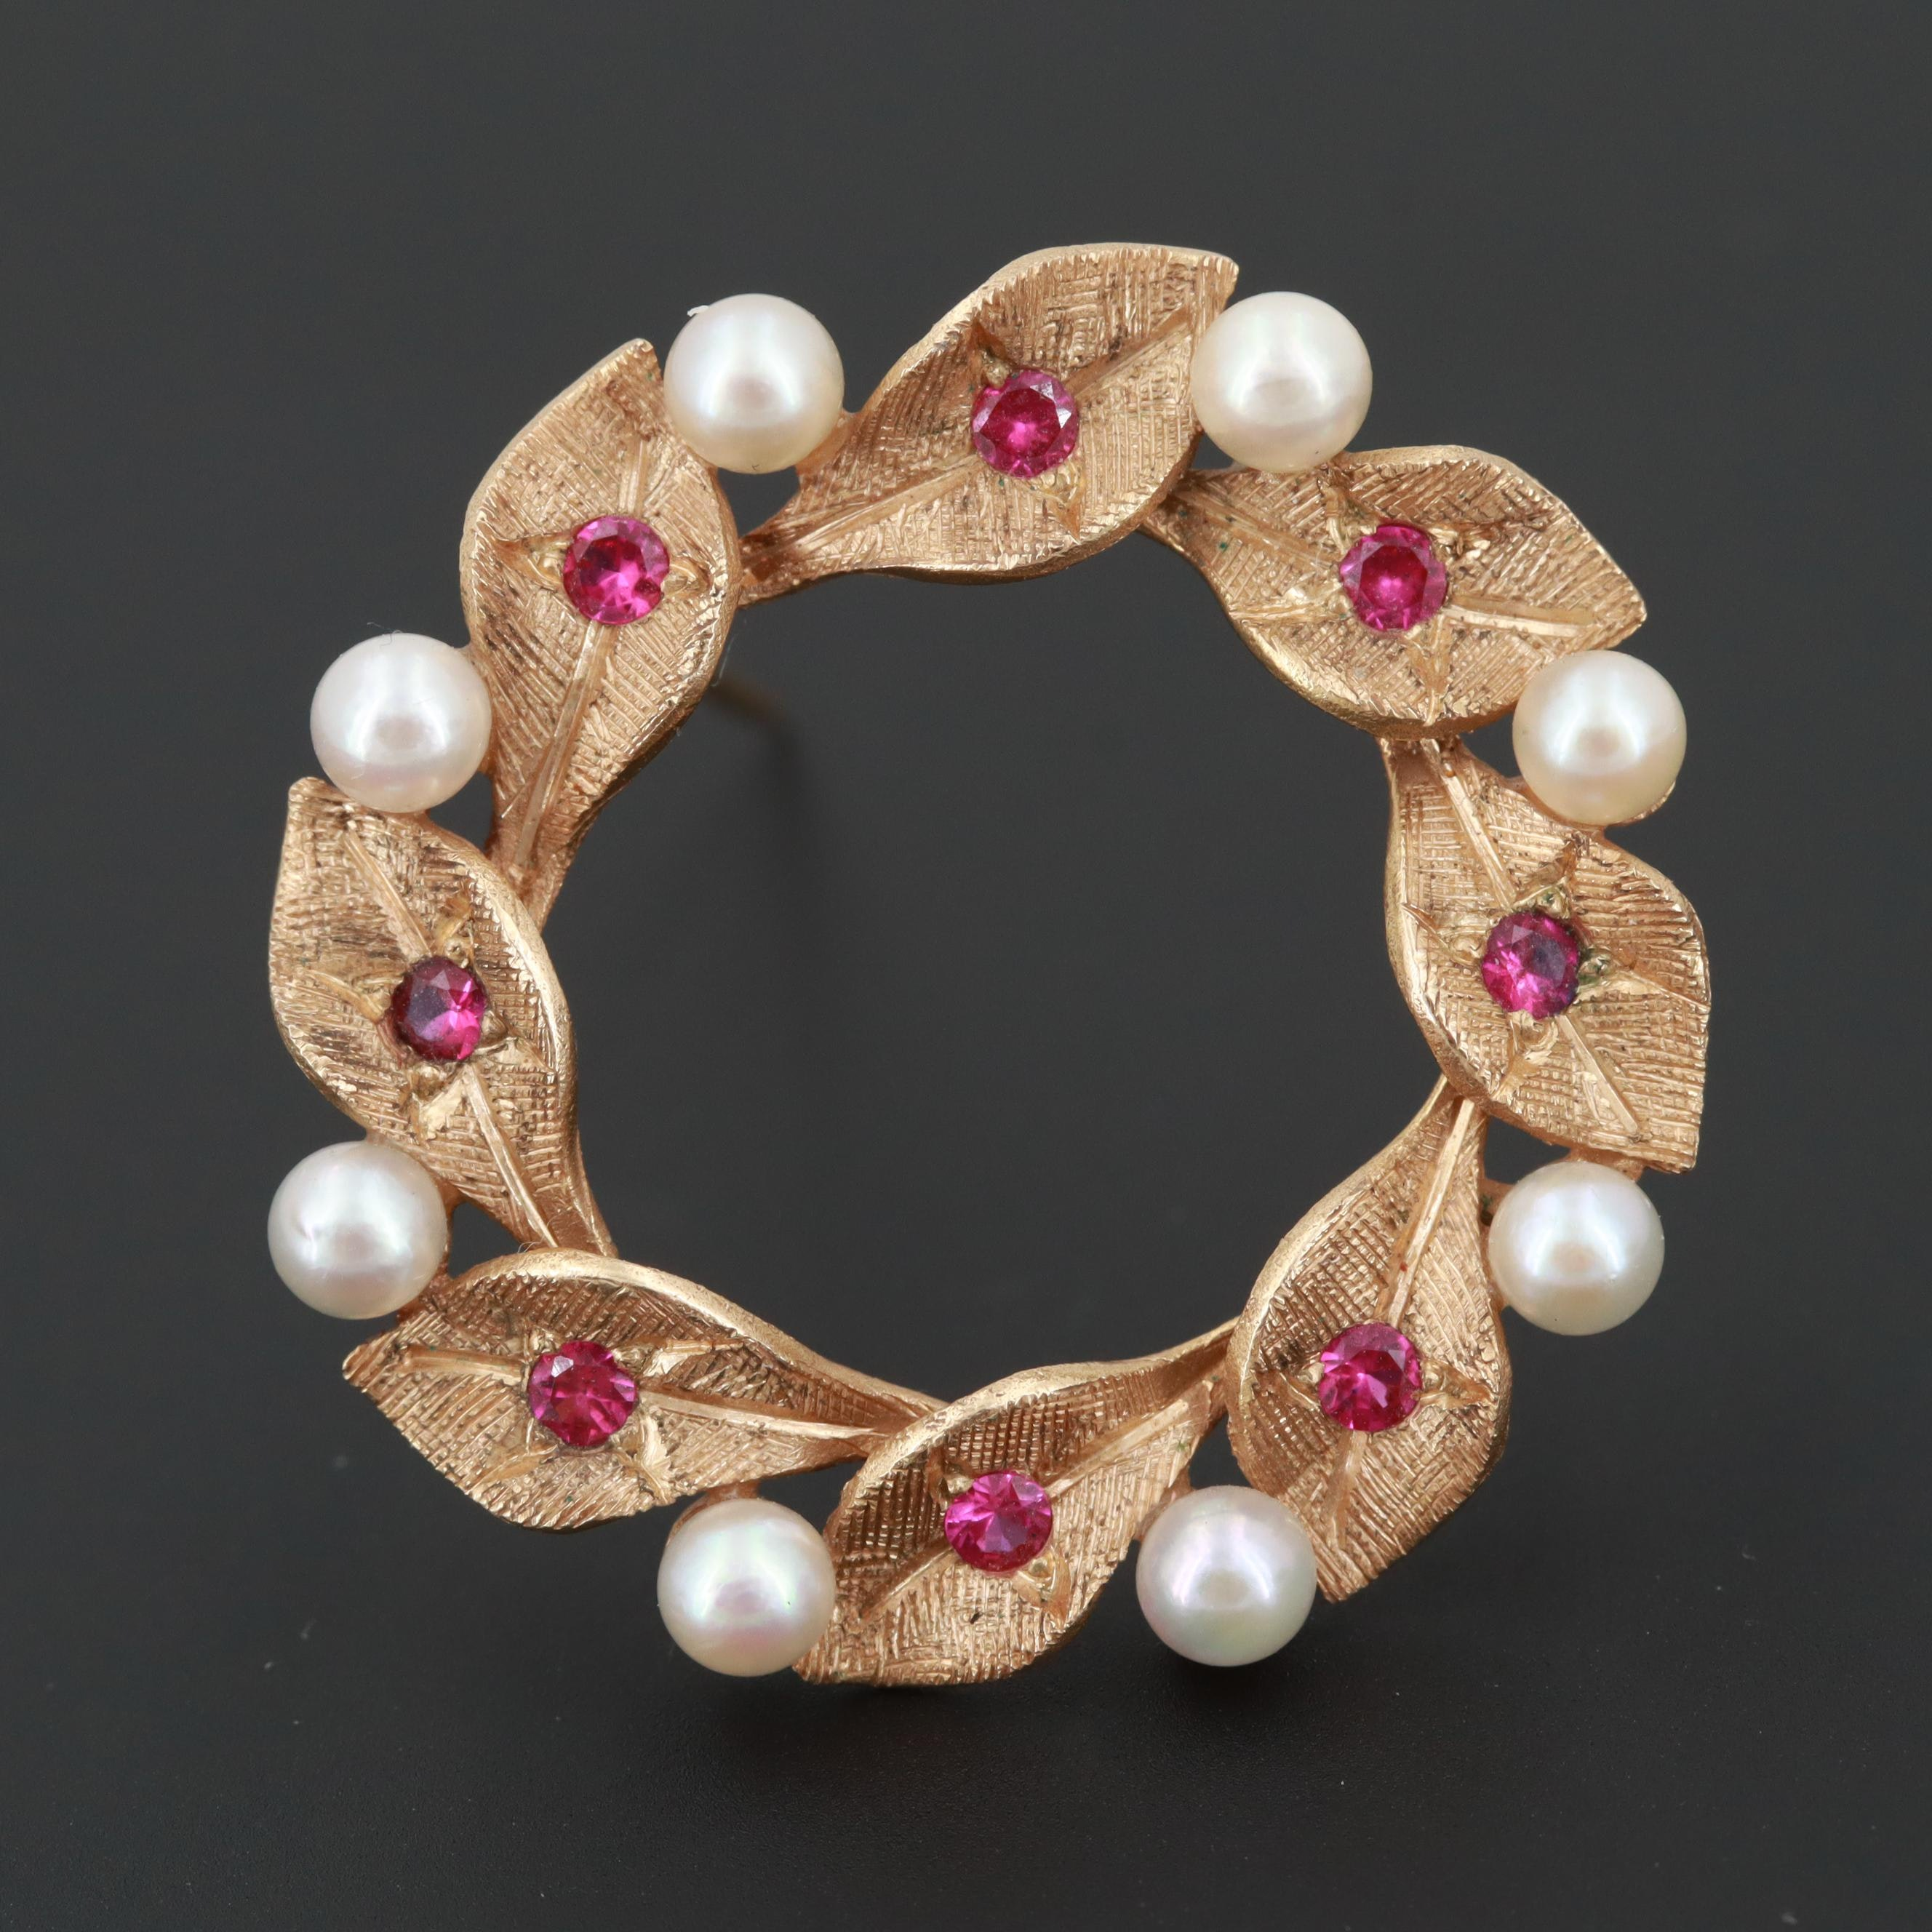 14K Yellow Gold Synthetic Ruby and Cultured Pearl Brooch